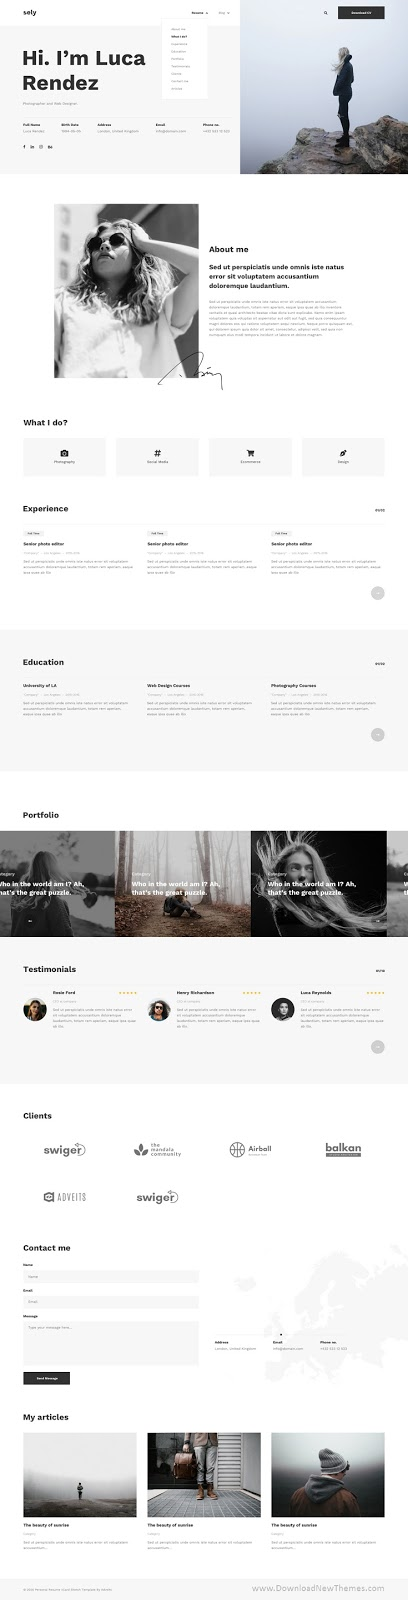 Personal Resume vCard Adobe XD Template